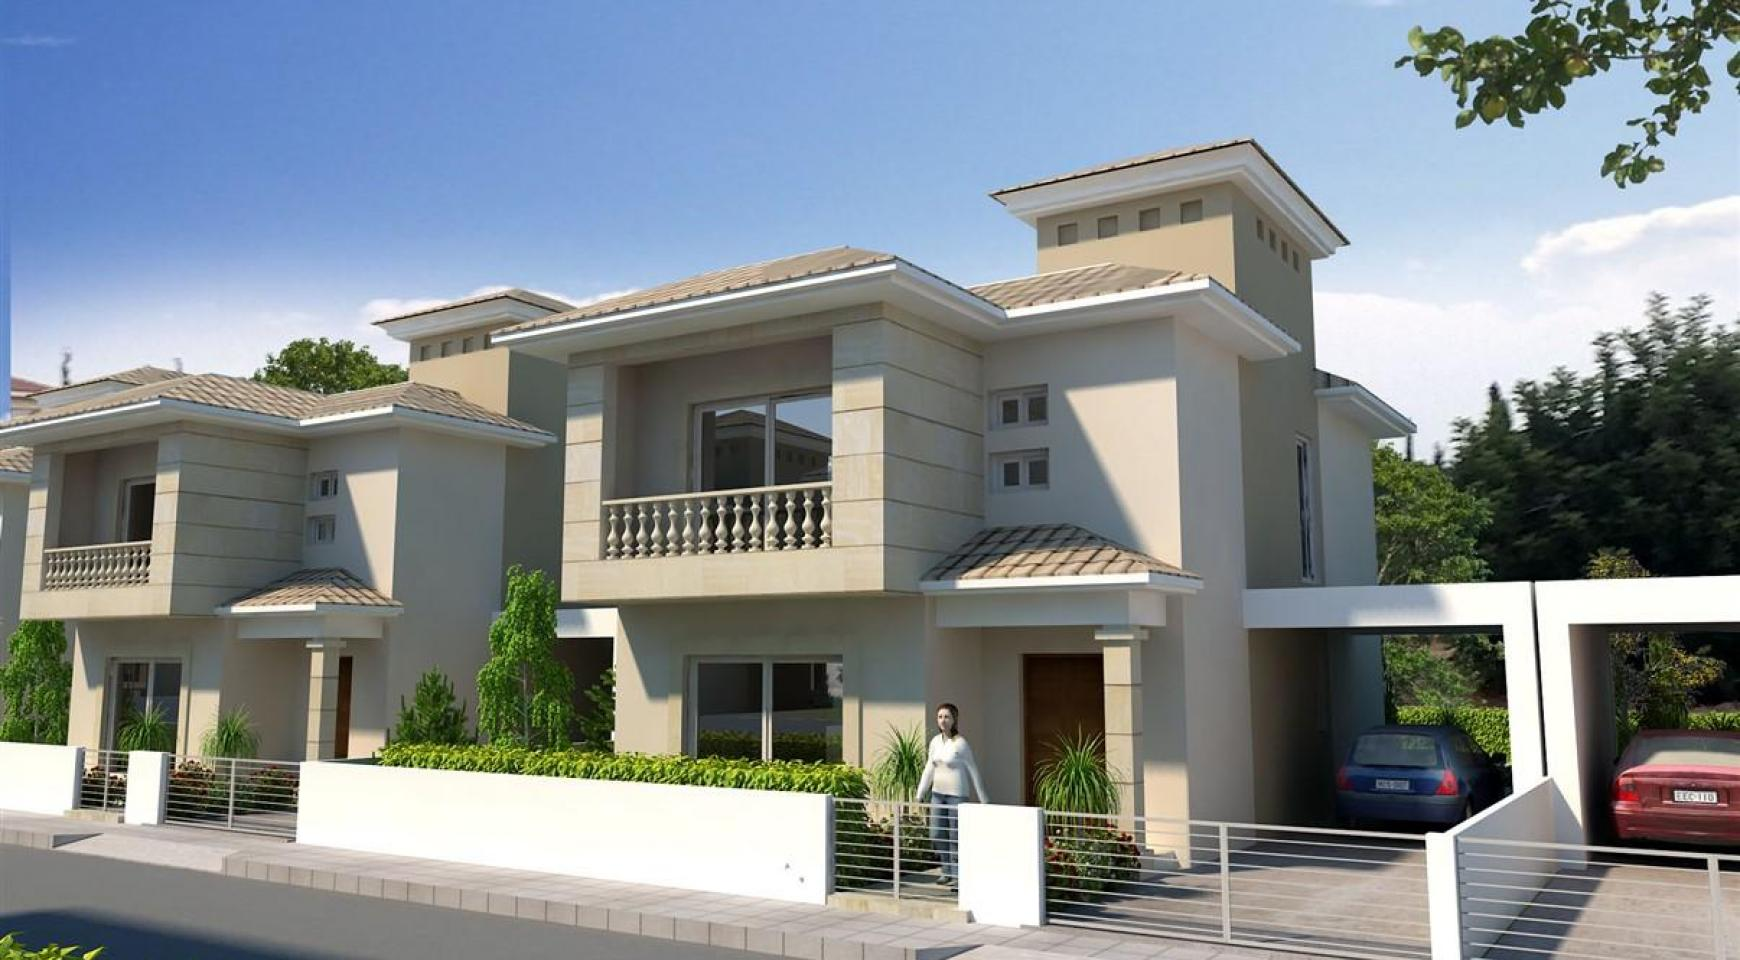 3 Bedroom Villa within a New Project - 6